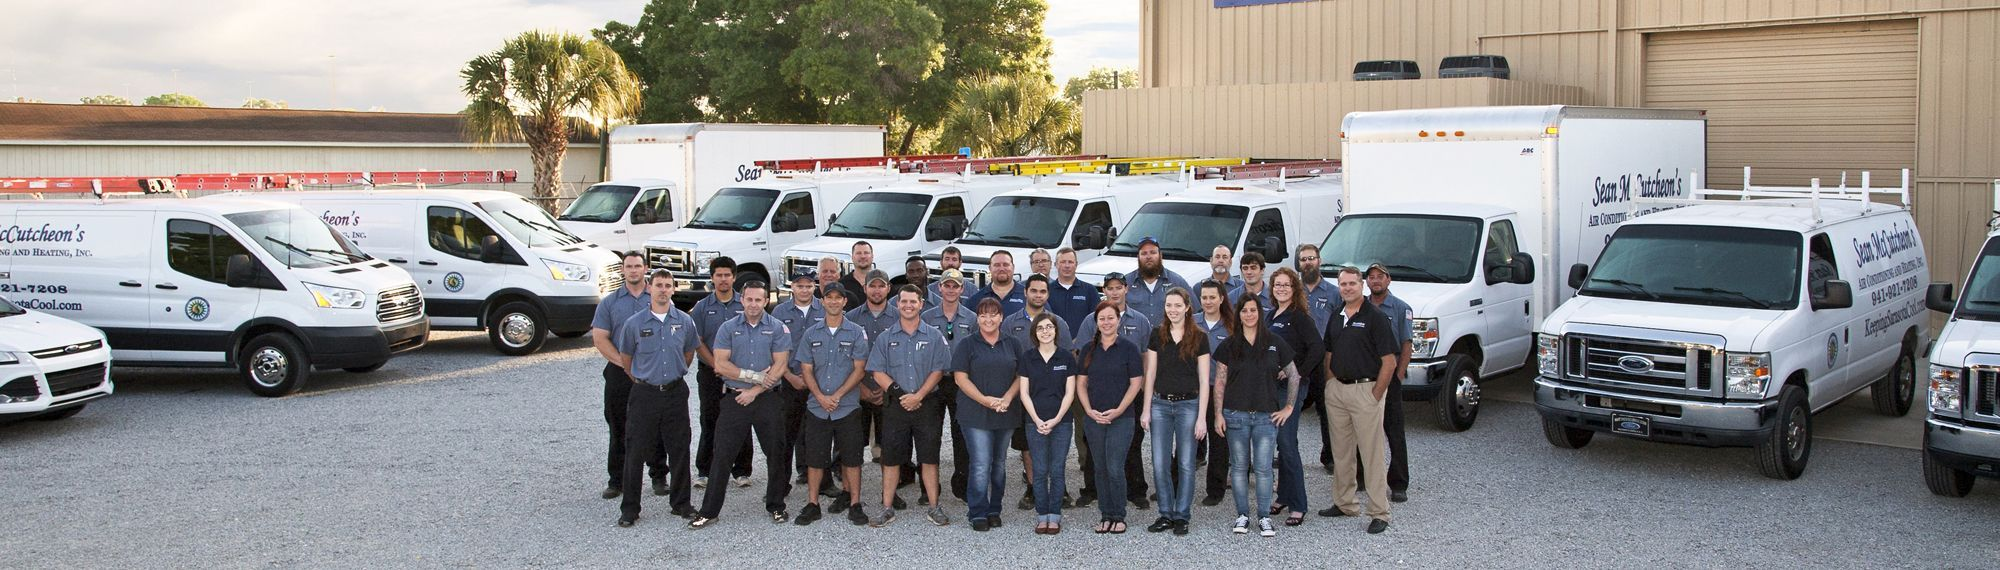 SMAC - Sarasota Air Conditioning Compnay - Team members and trucks